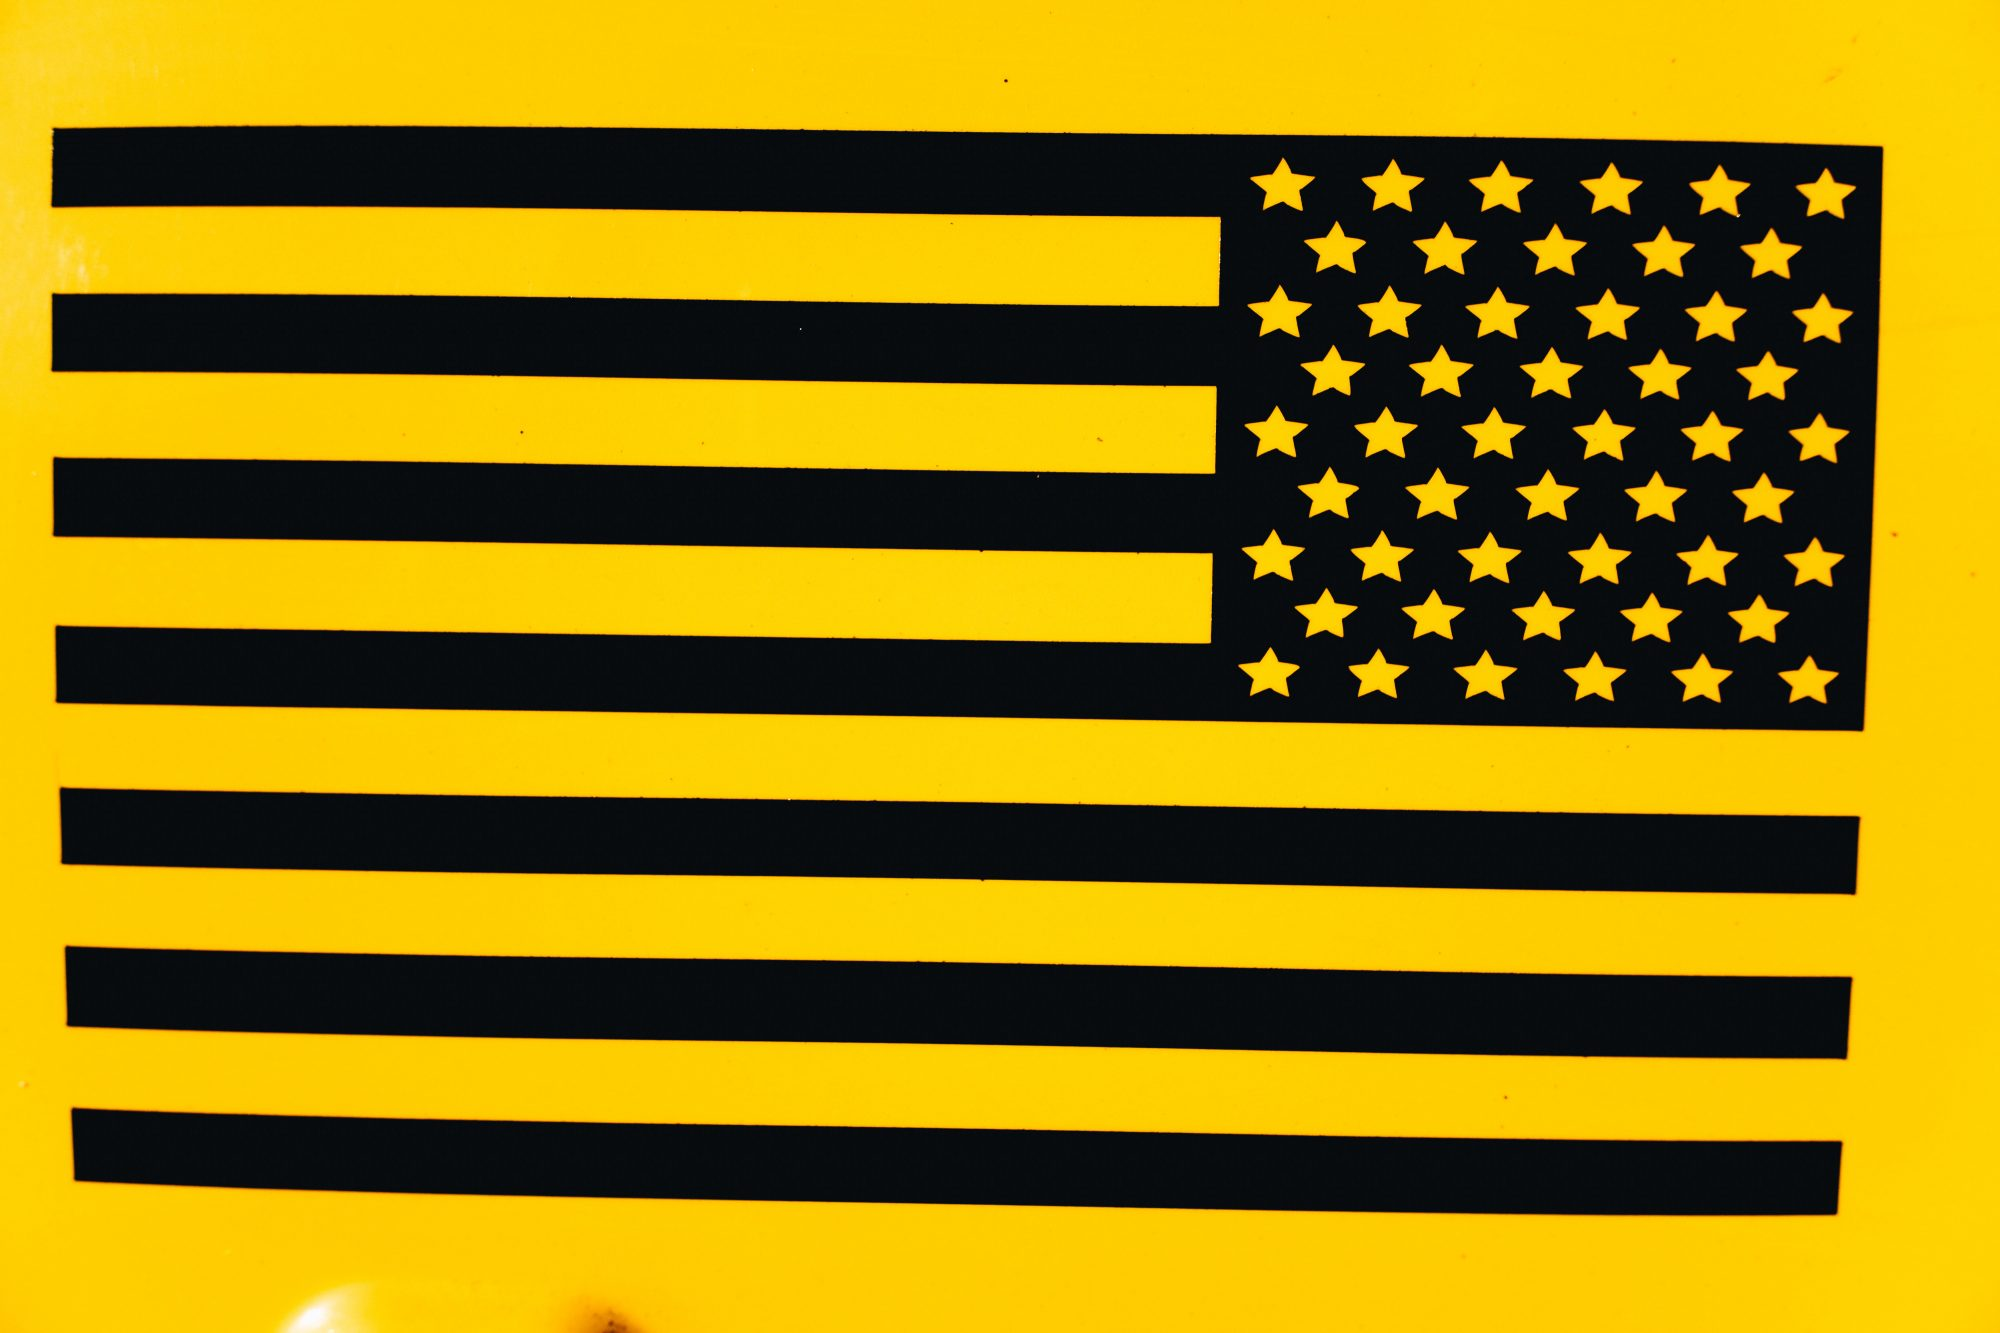 black and yellow American flag